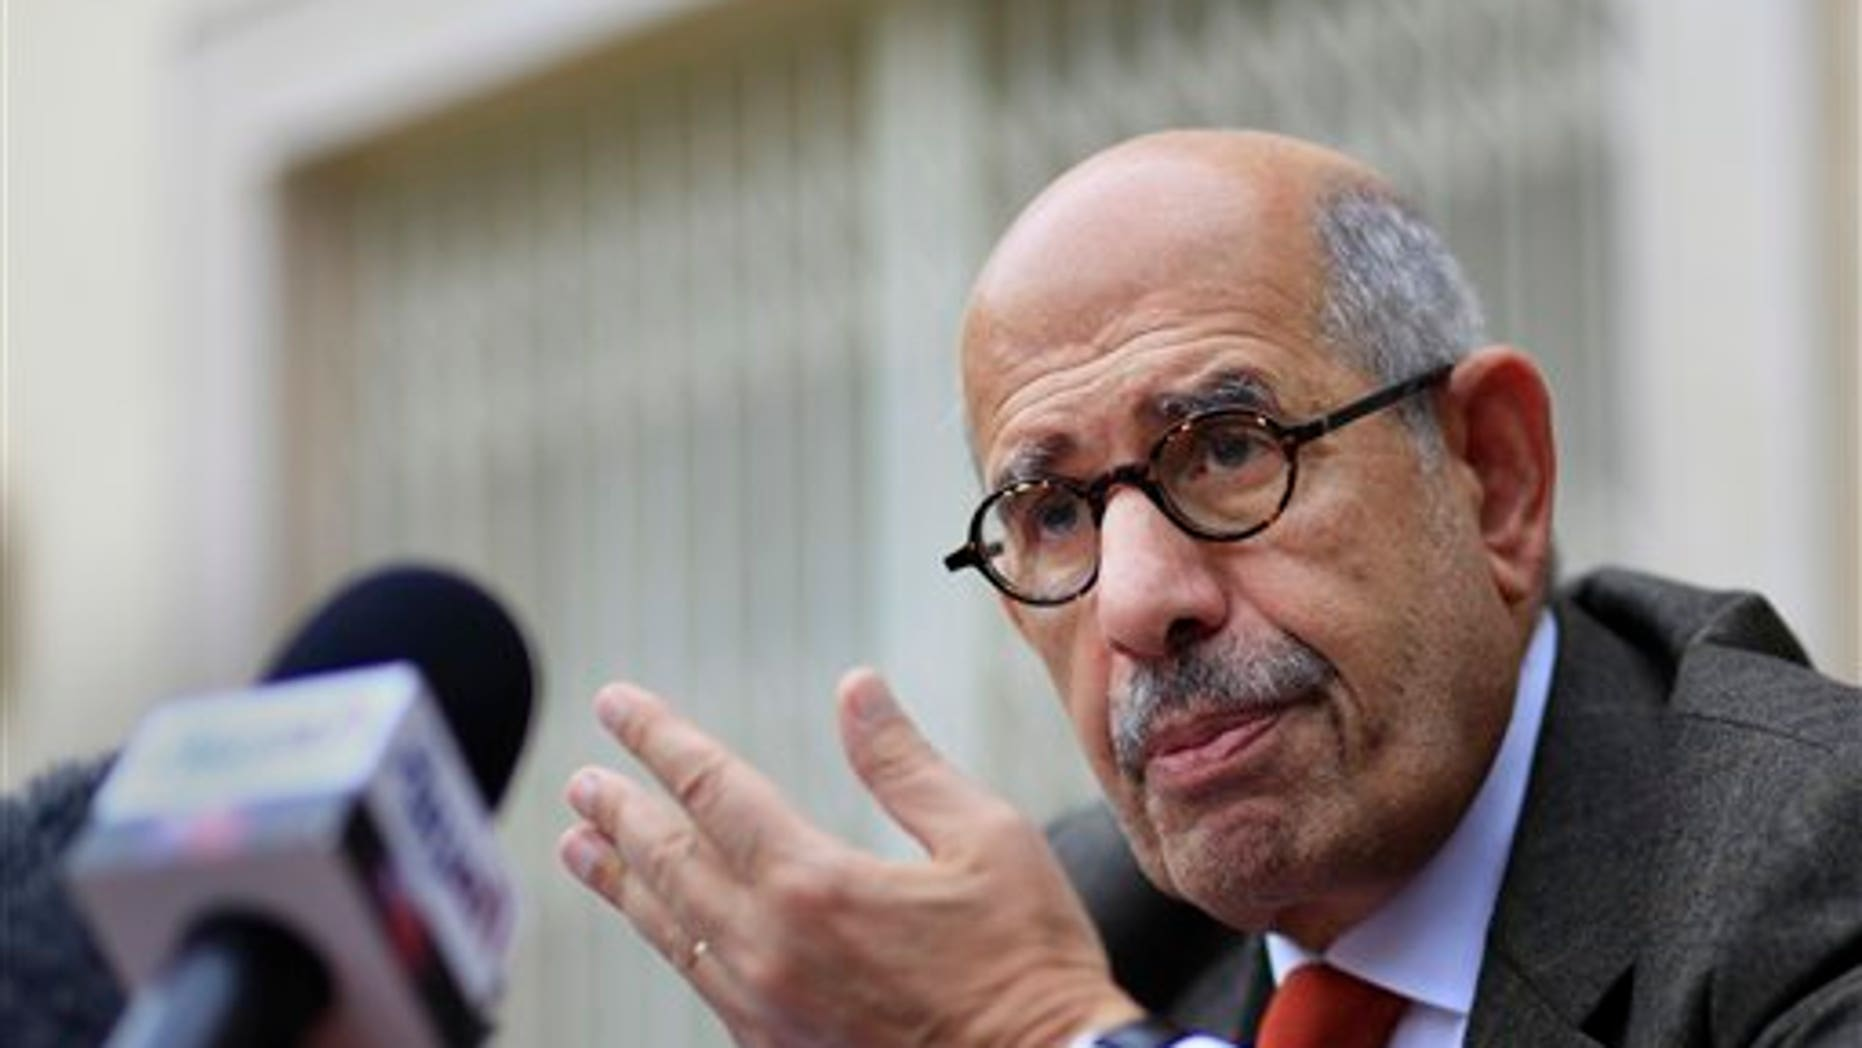 Feb. 4: Egyptian pro-democracy advocate Mohamed ElBaradei, former chief of the UN nuclear watchdog agency and Egypt's reformist leader, talks during a press conference in Cairo, Egypt. (AP)